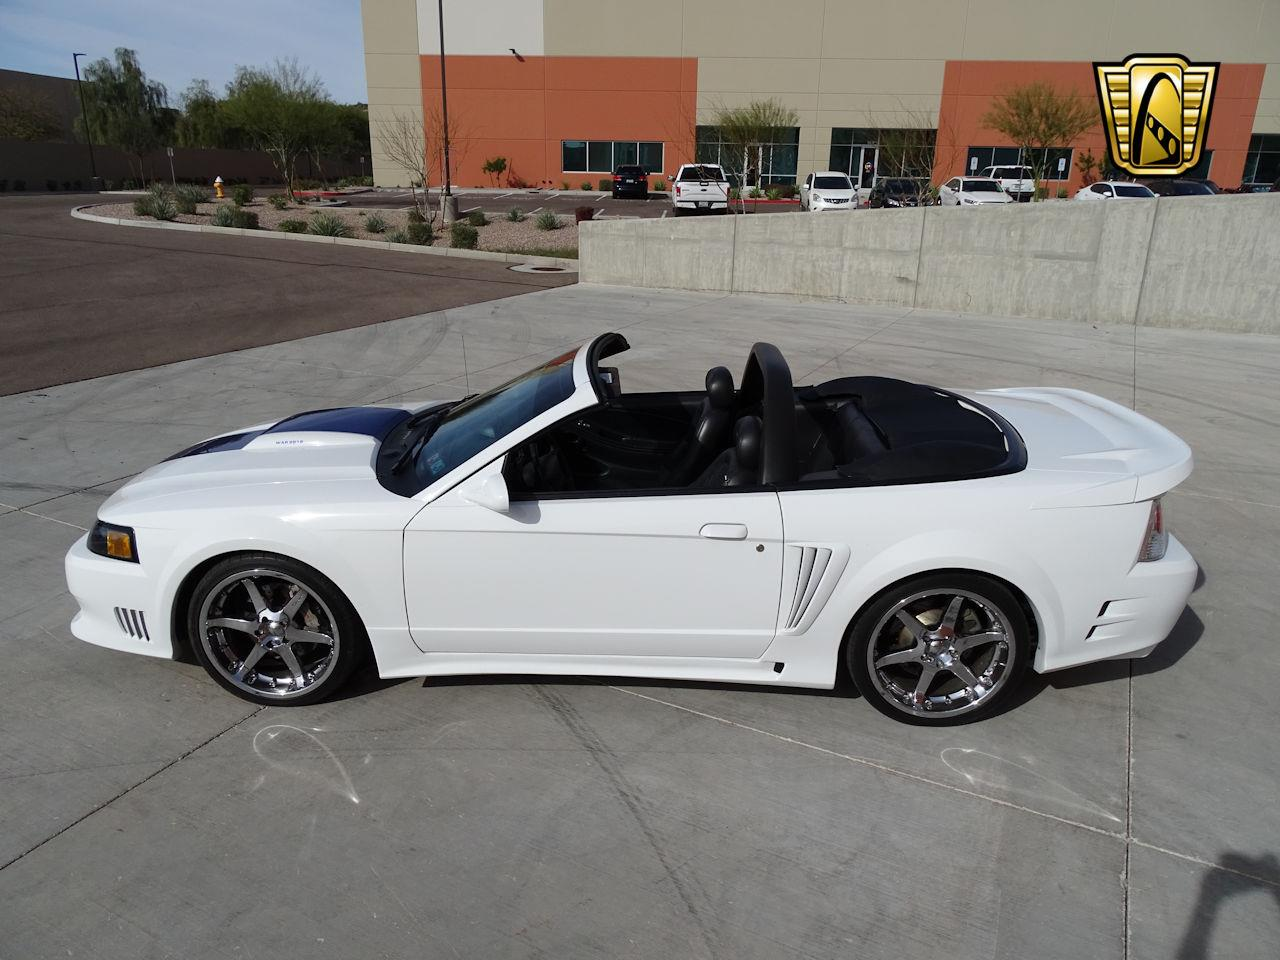 Large Picture of 2002 Mustang - $31,995.00 Offered by Gateway Classic Cars - Scottsdale - MZG0